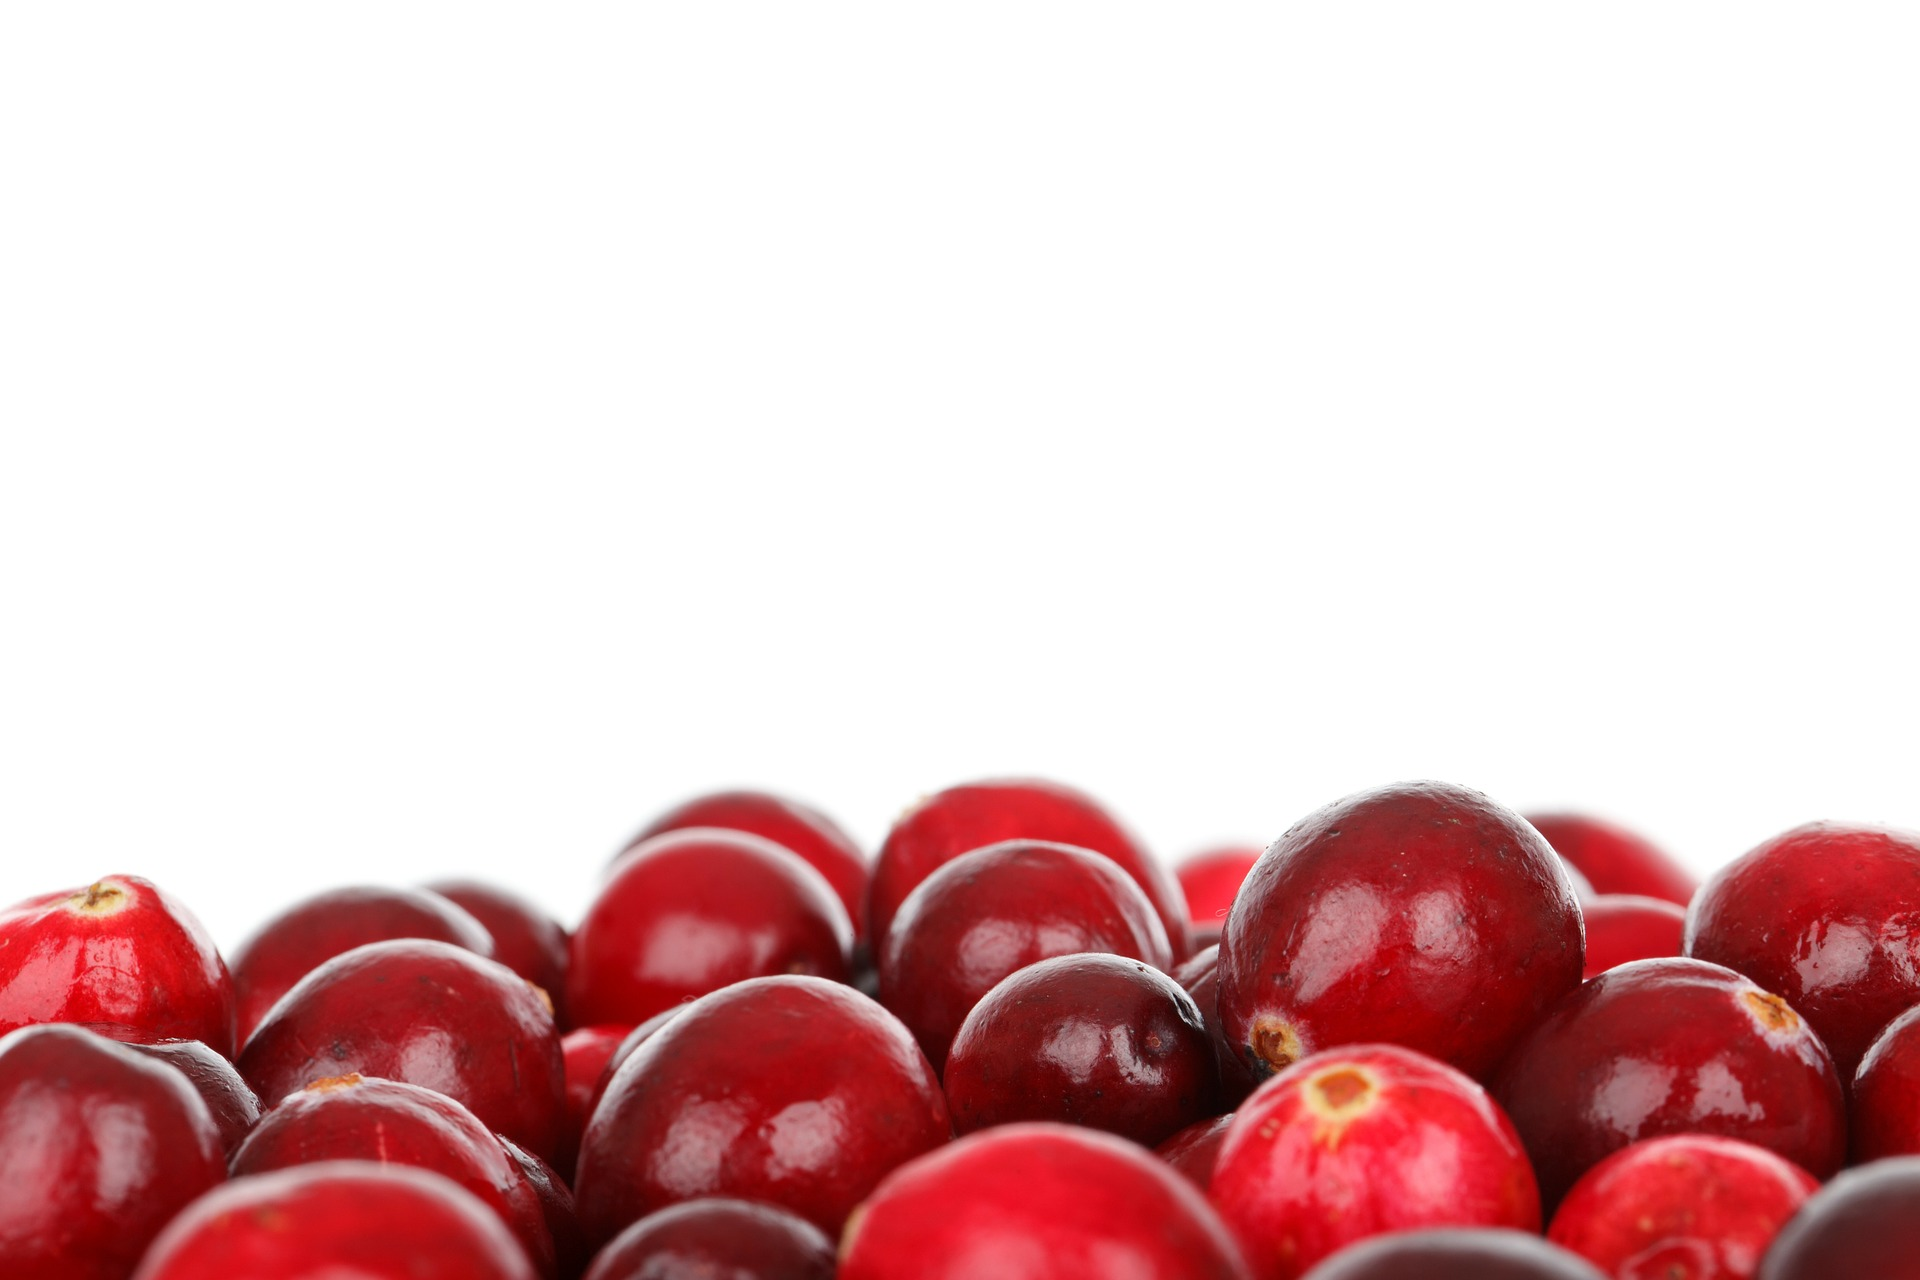 cranberries: uses for cranberries besides sauce